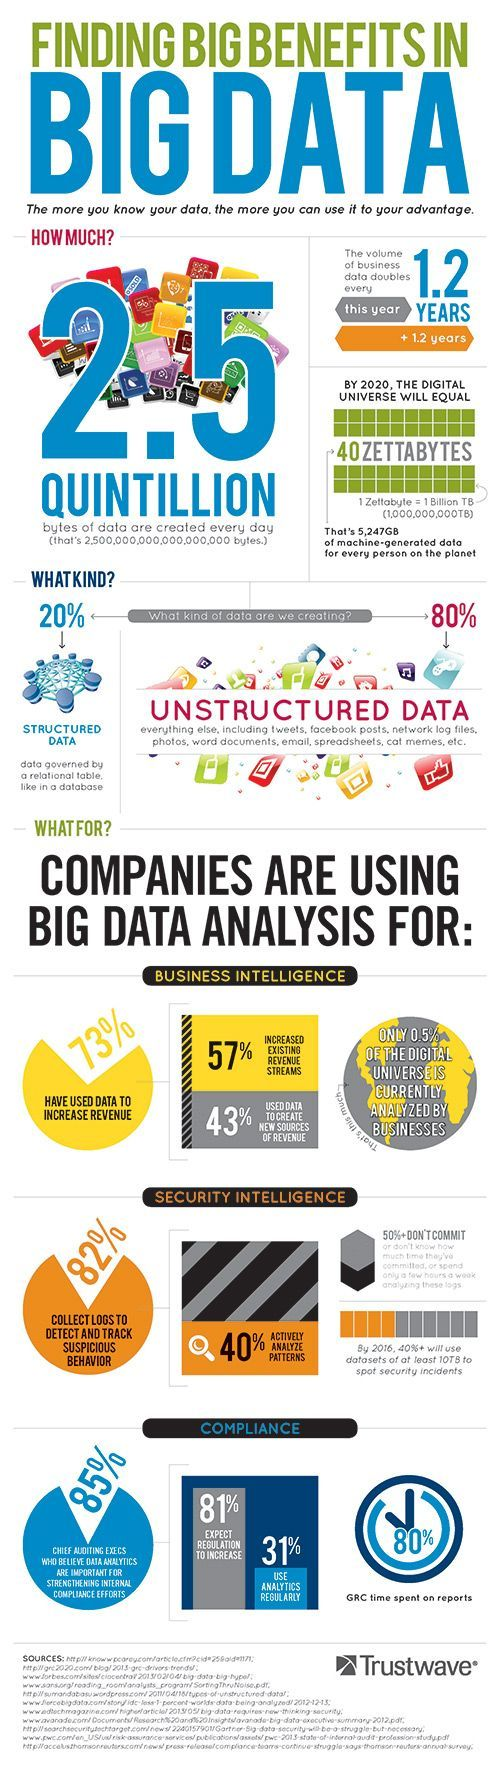 Socially Unforgettable offers workshops to teach you how to find Big Benefits in Big Data #Infographic #socialmedia #workshops Marinda 0829554725 marinda@sou.ms http://www.sou.ms